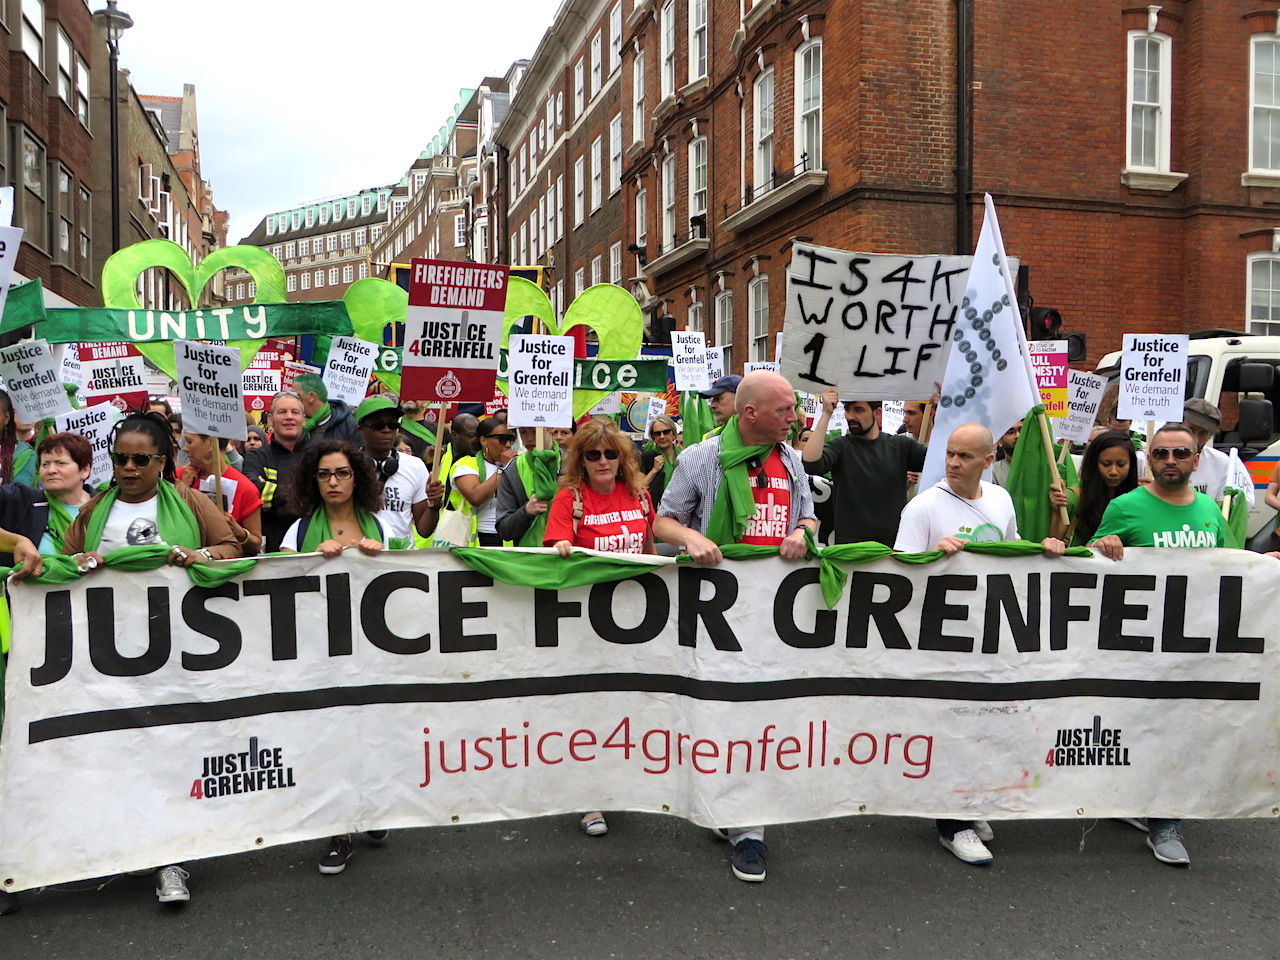 Justice for Grenfell: banner on a march in central London on June 16, 2018, just two days after the first anniversary of the fire in June 2017 that killed 72 people (Photo: Andy Worthington).